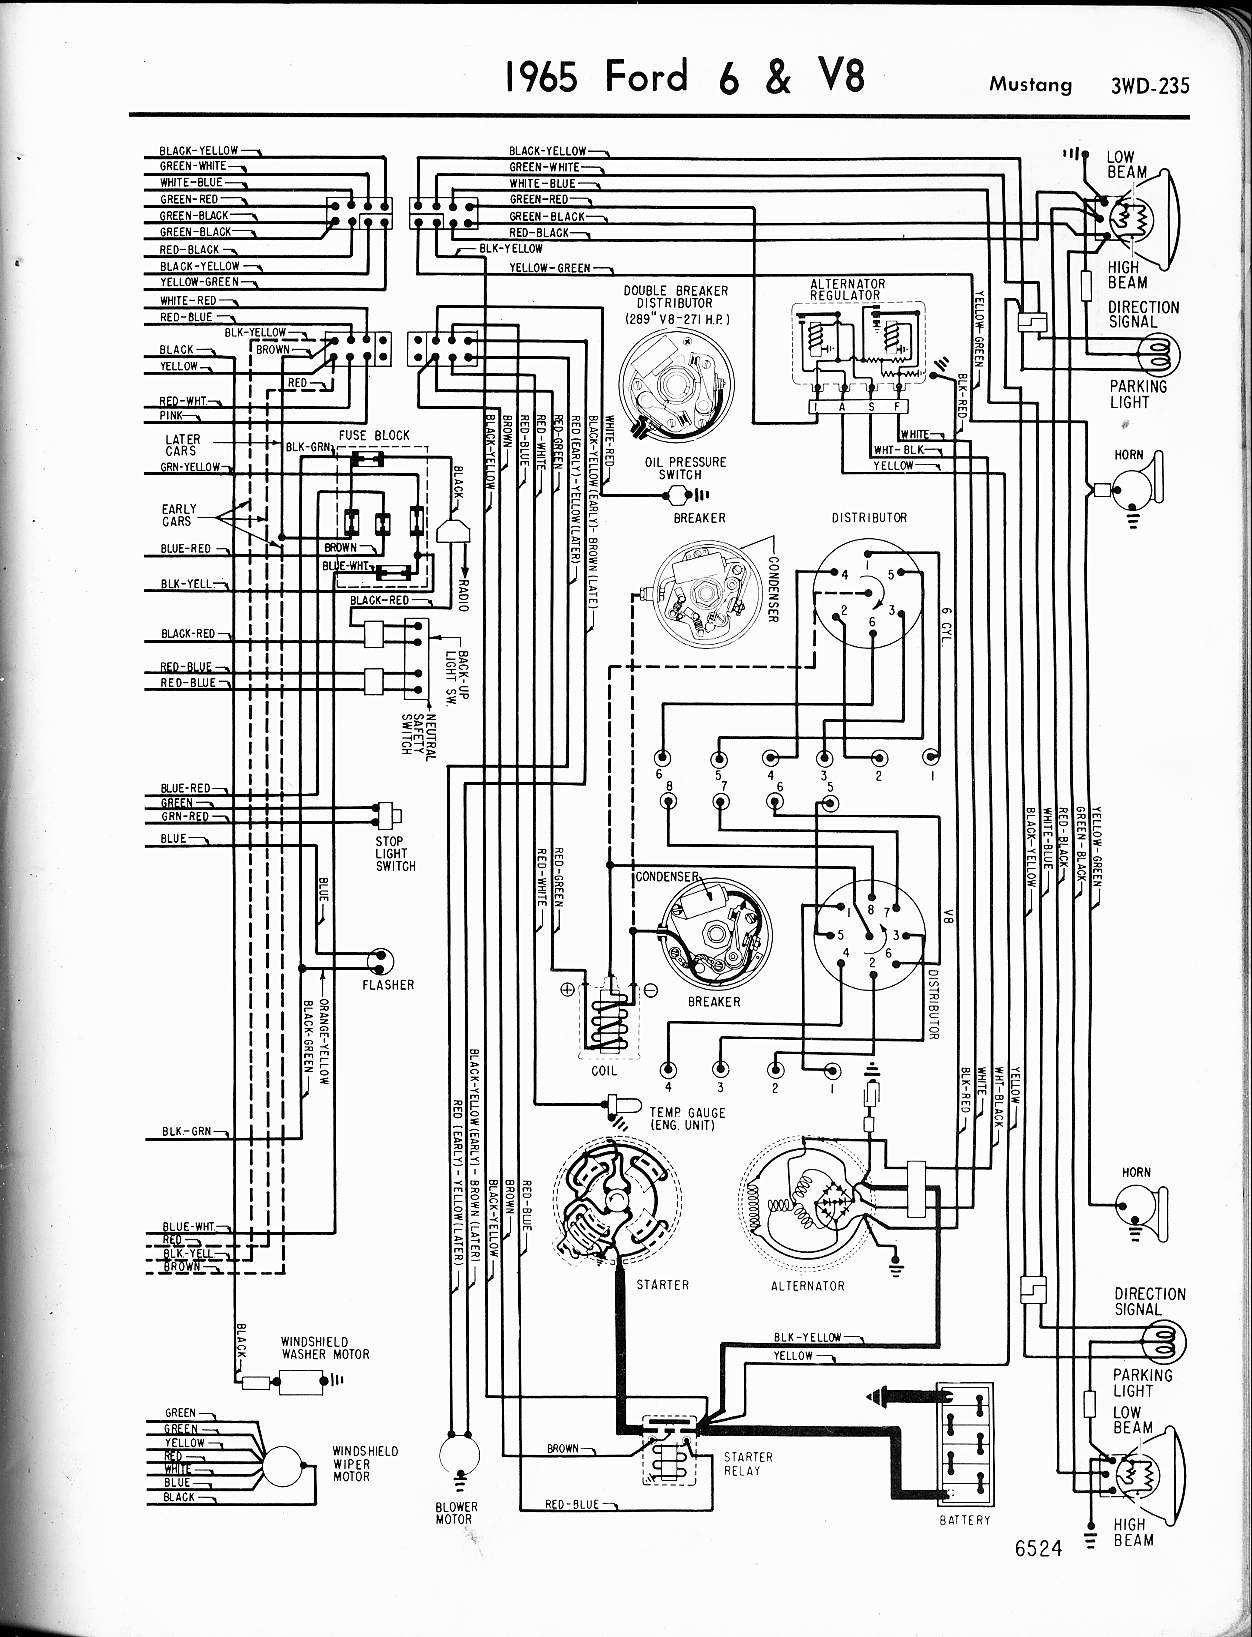 1965_mustang_wiring_2 ford diagrams Terminator Time Loop Diagram at n-0.co